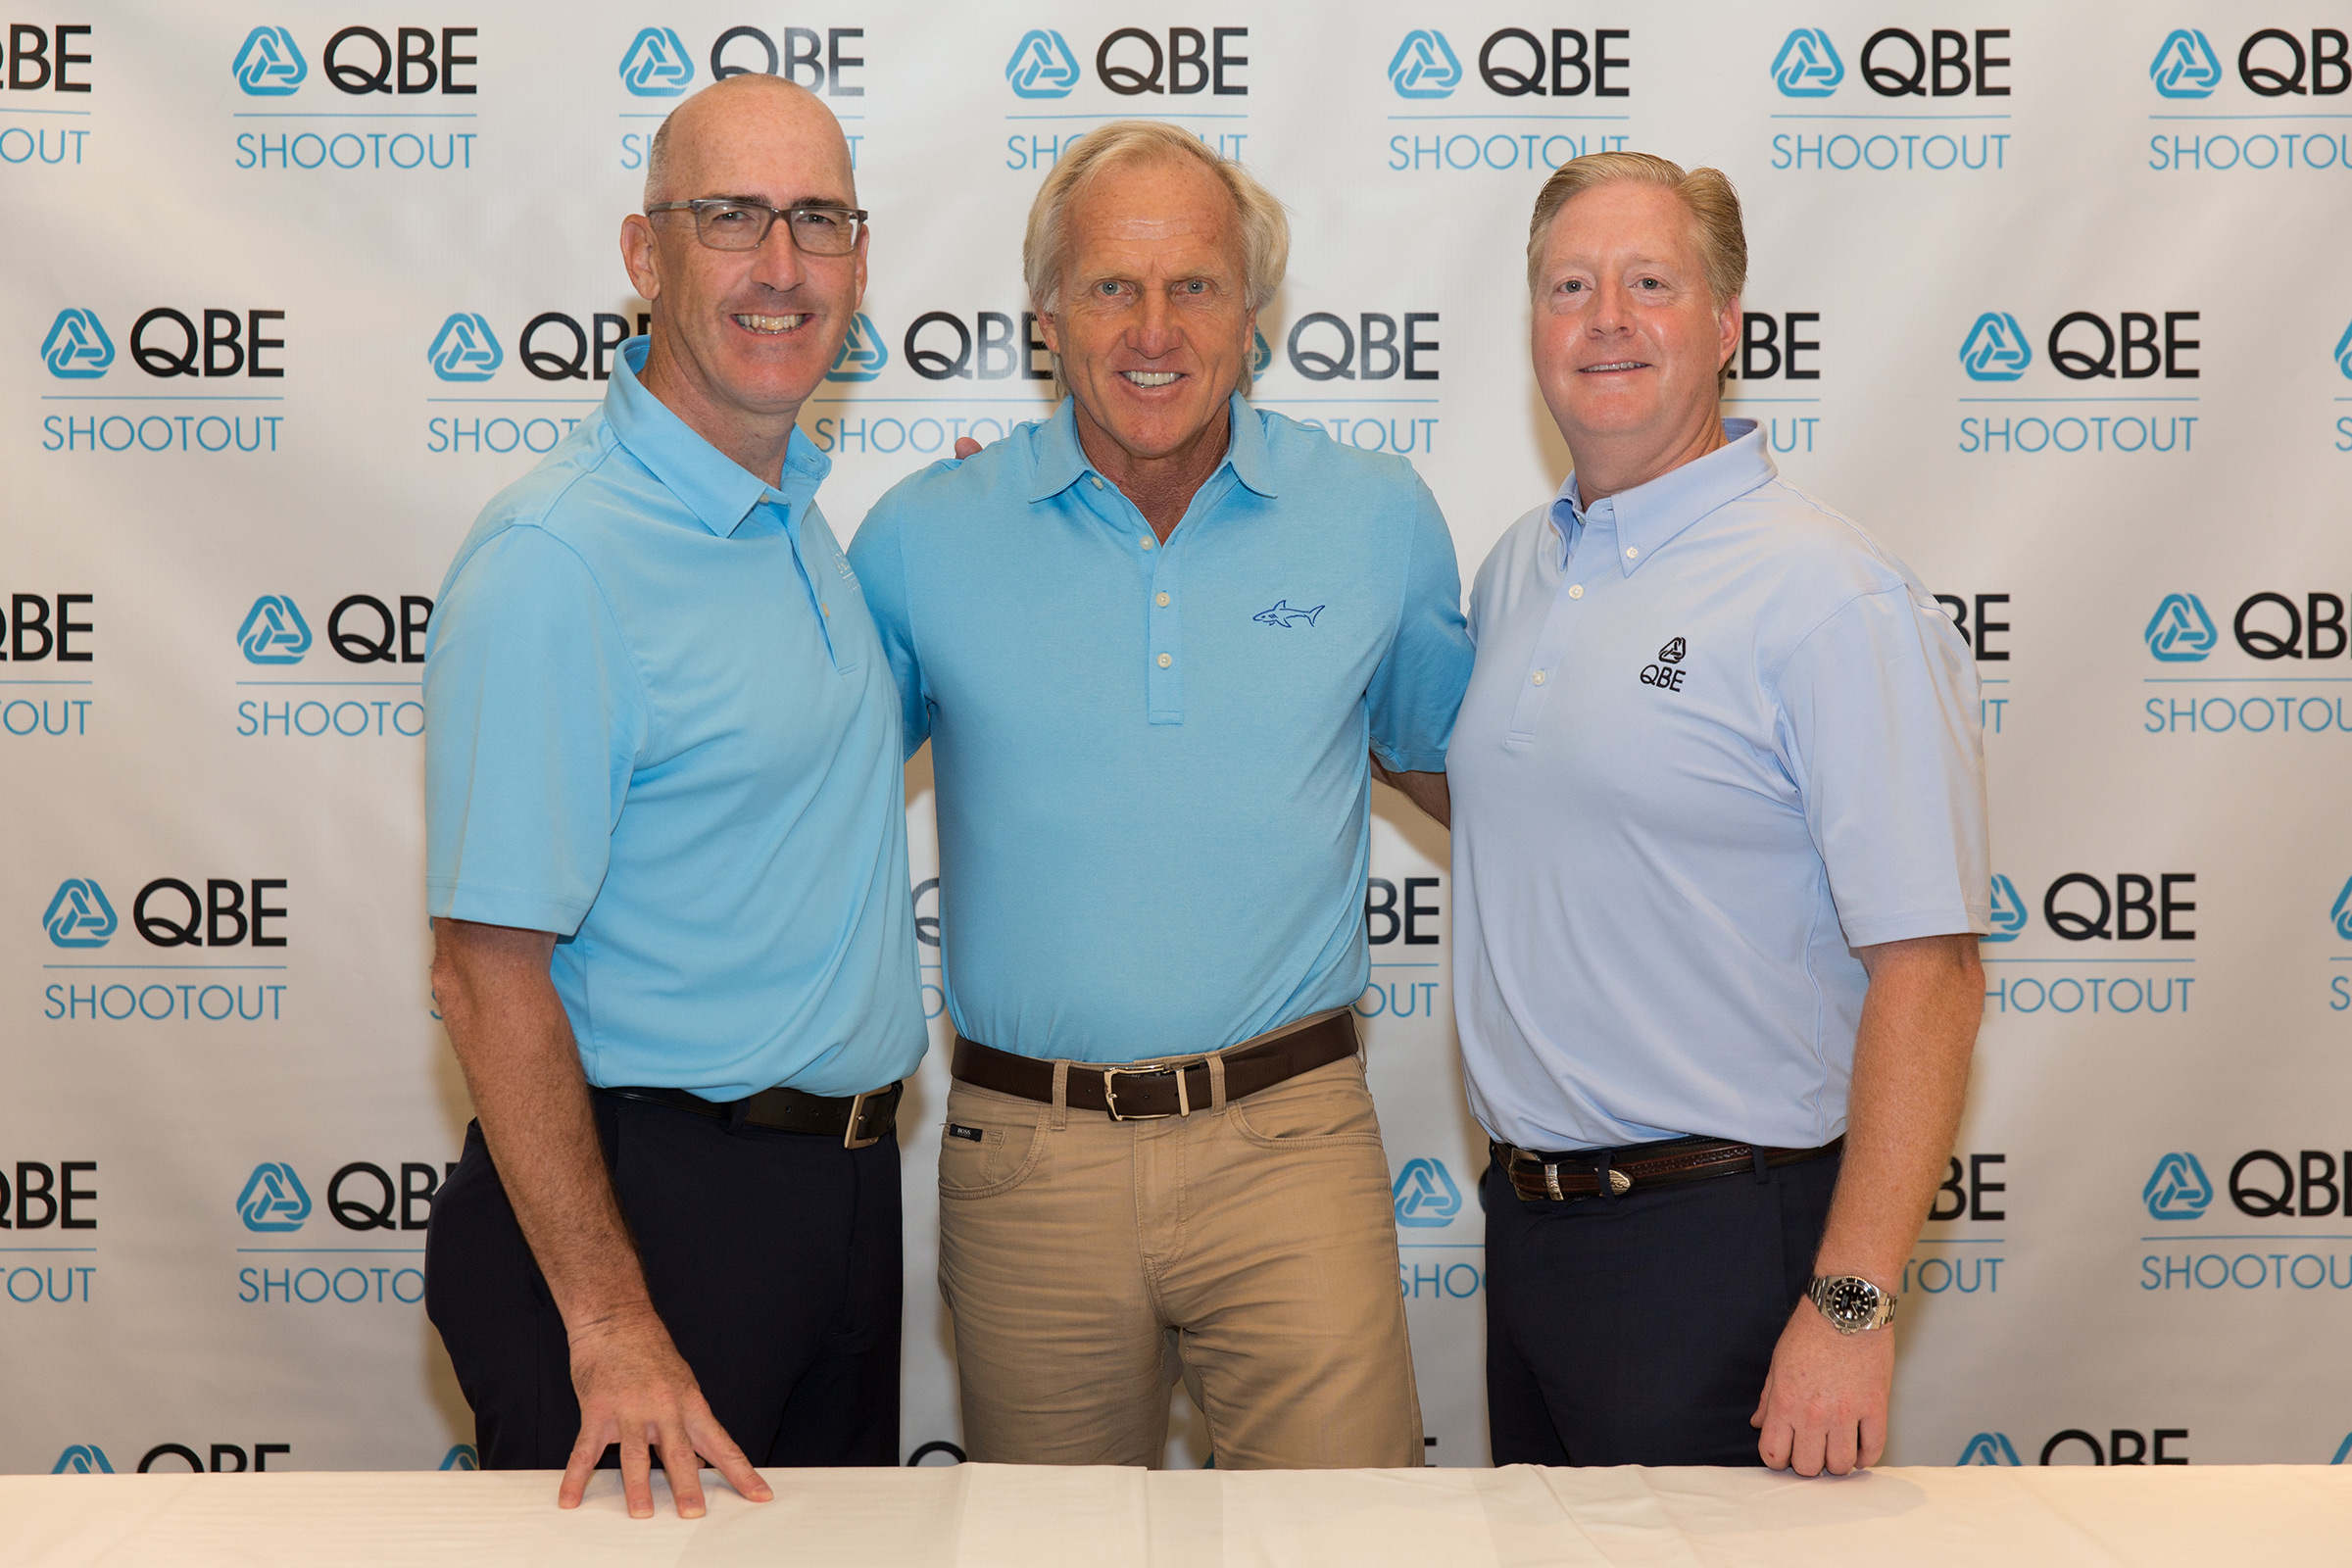 Greg Norman with QBE Executives